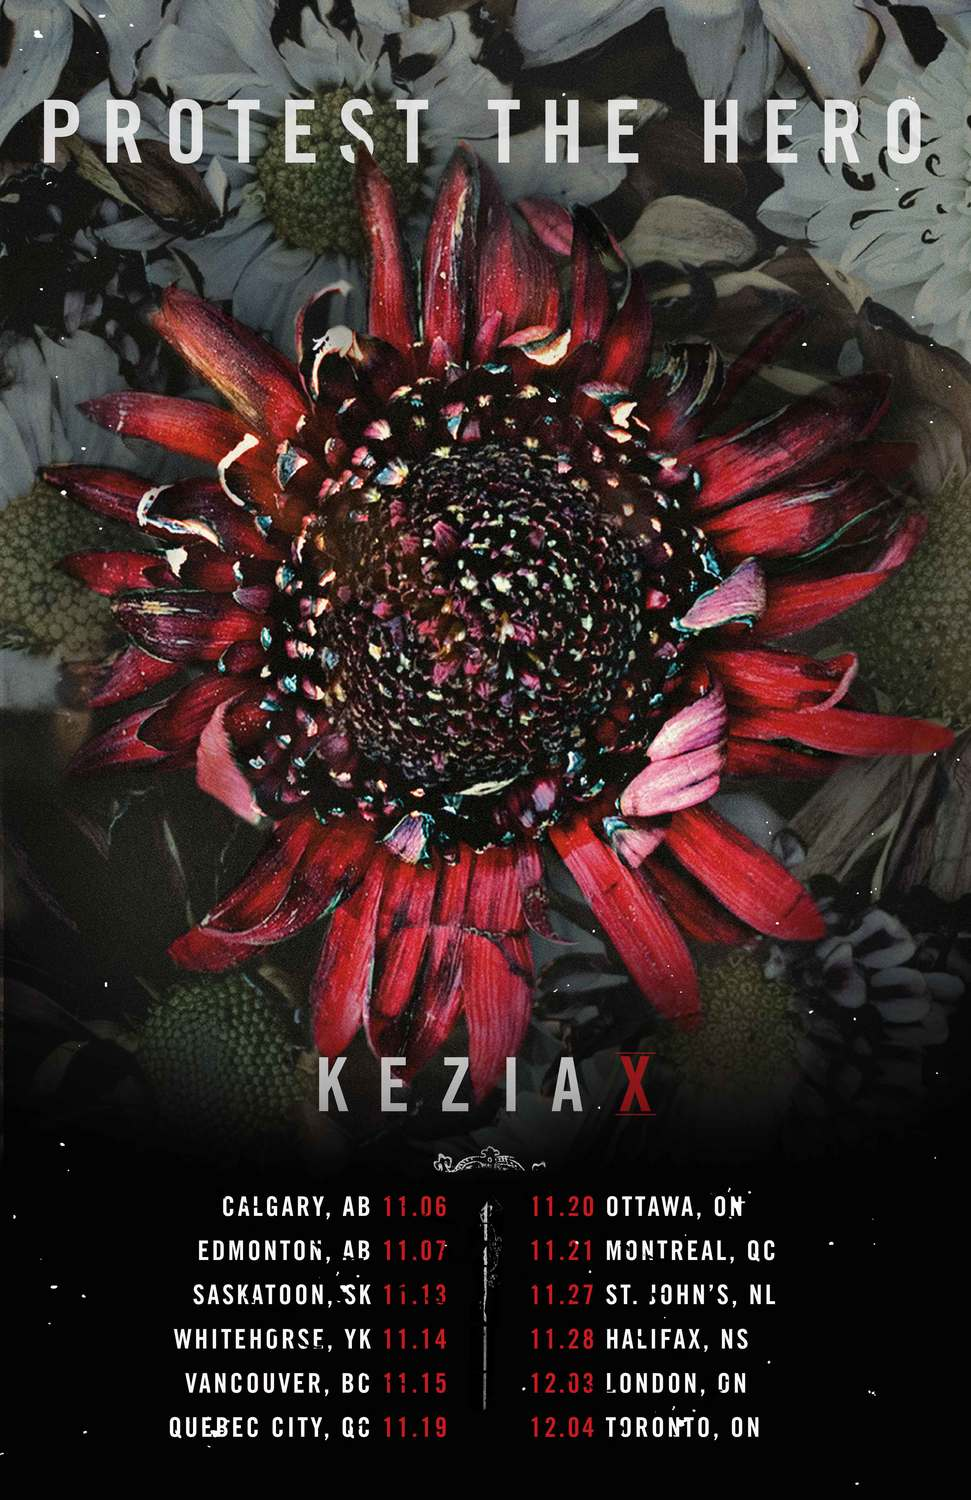 Kezia 10th Anniversary Shows! - Protest The Hero